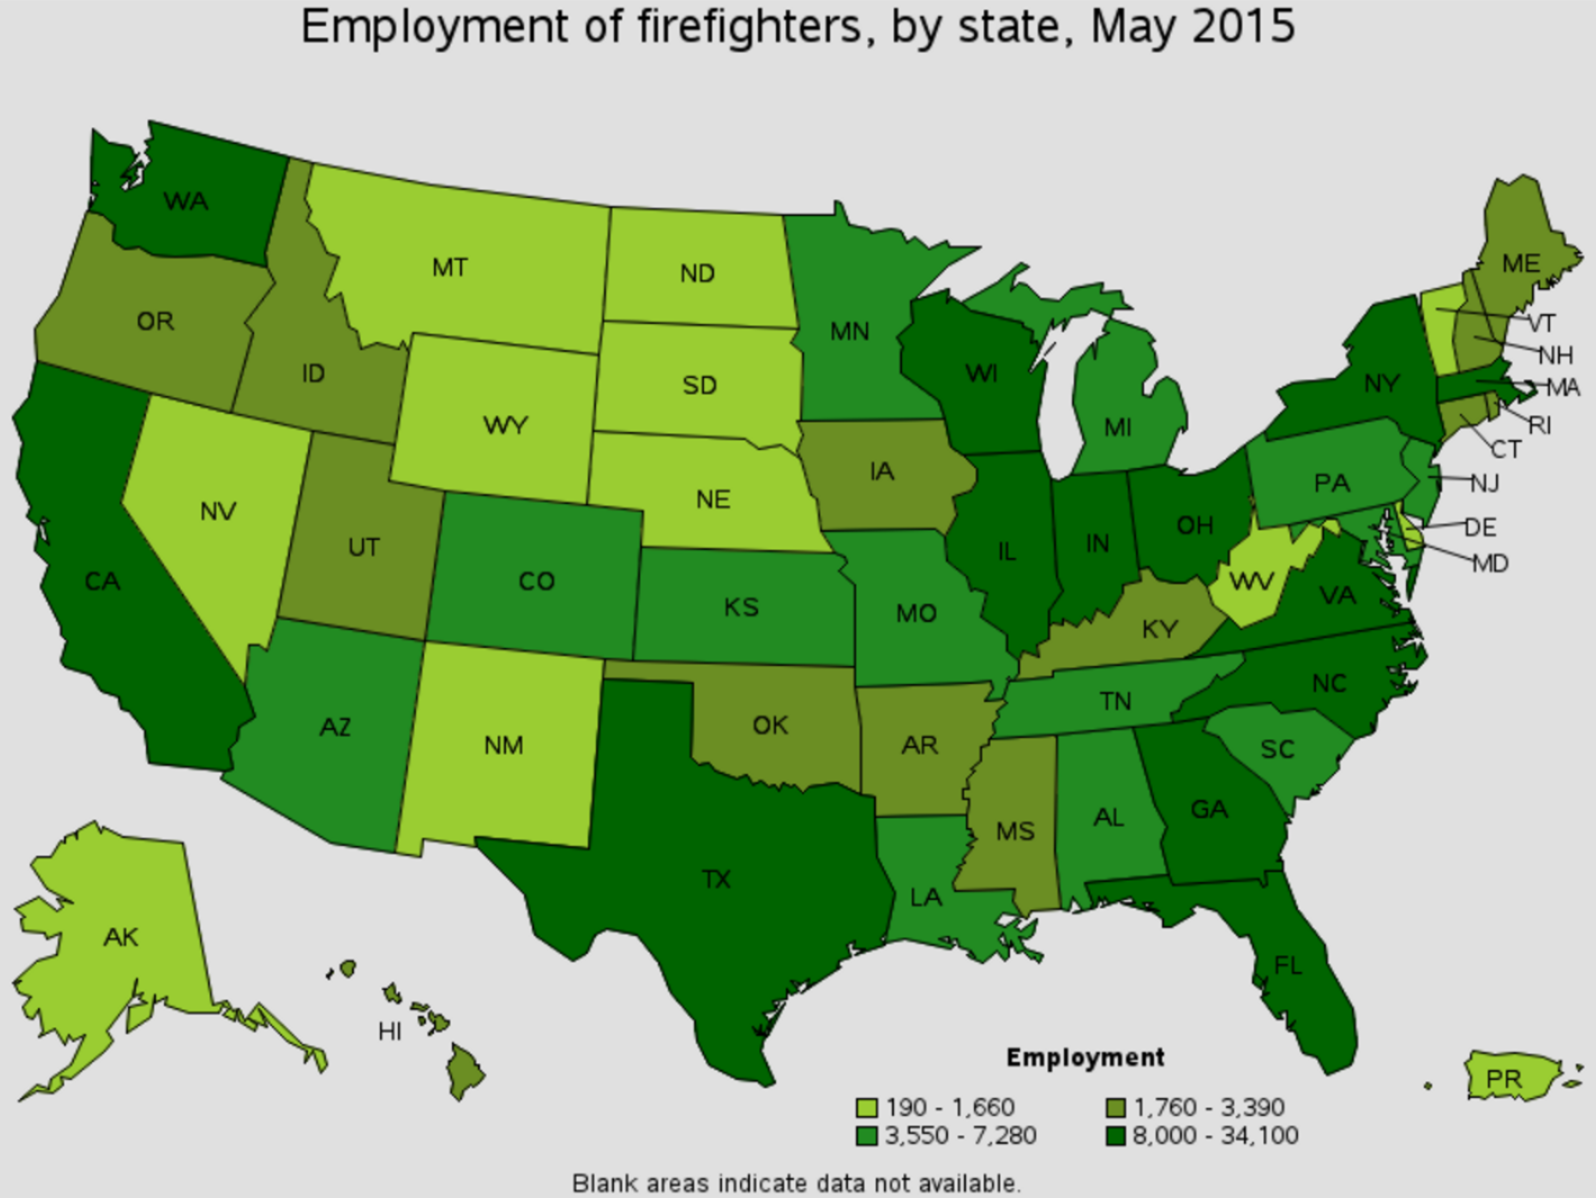 firefighter job outlook by state Winona Missouri